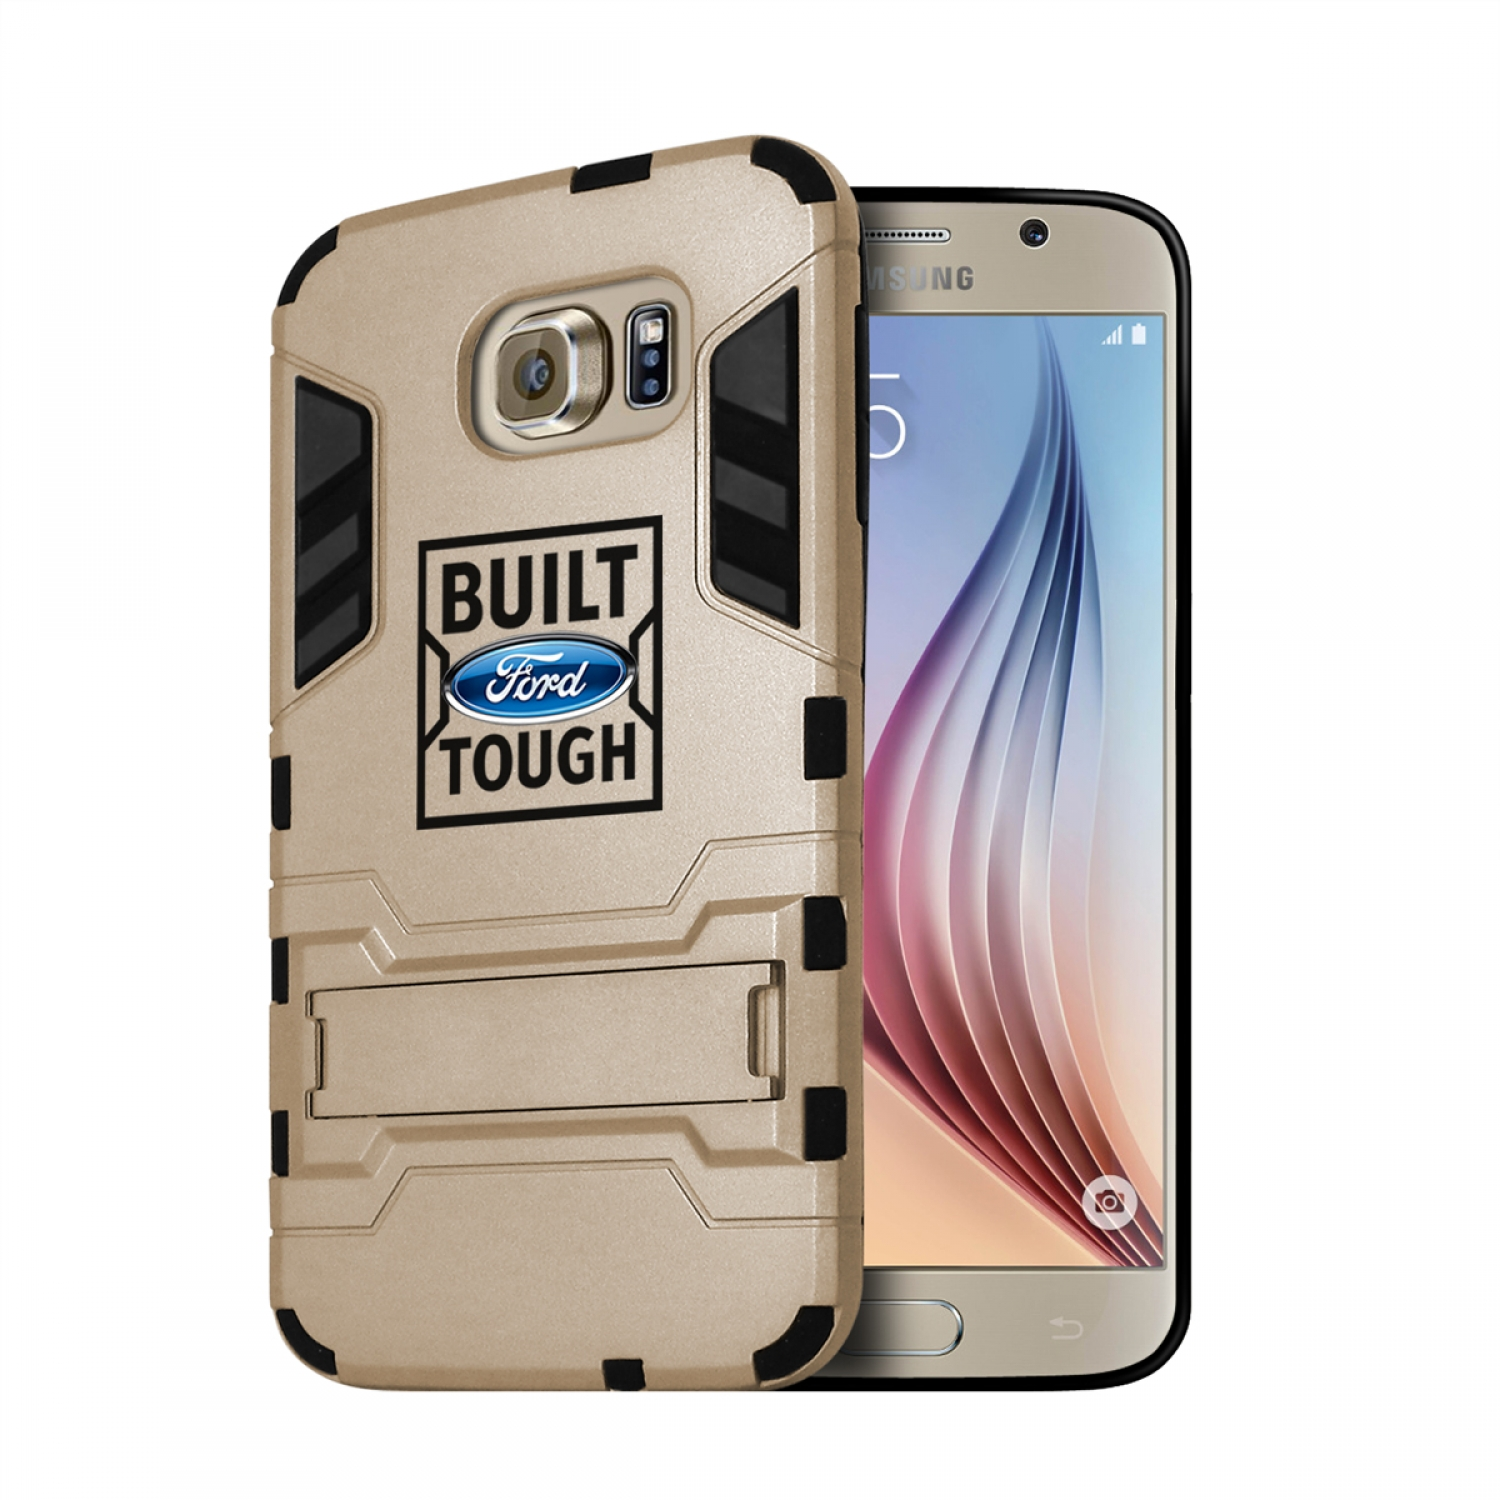 Ford Built Ford Tough Samsung Galaxy S6 Shockproof TPU ABS Hybrid Golden Phone Case